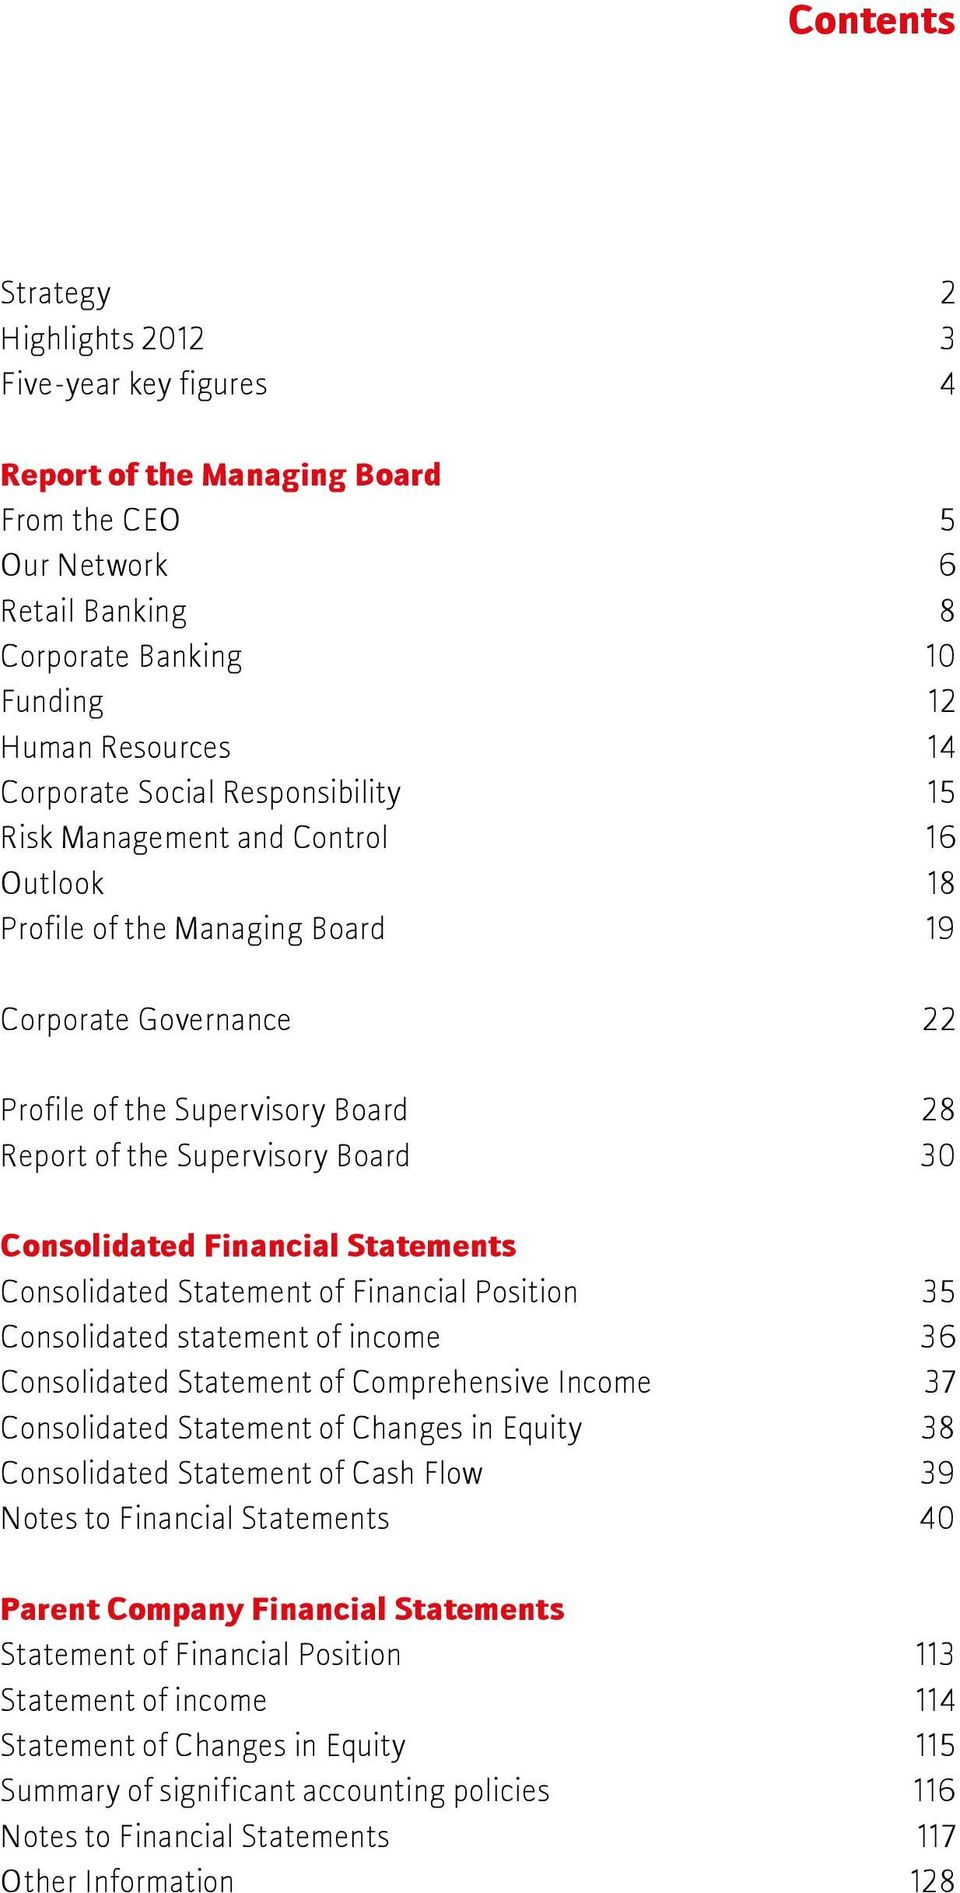 Consolidated Financial Statements Consolidated Statement of Financial Position 35 Consolidated statement of income 36 Consolidated Statement of Comprehensive Income 37 Consolidated Statement of